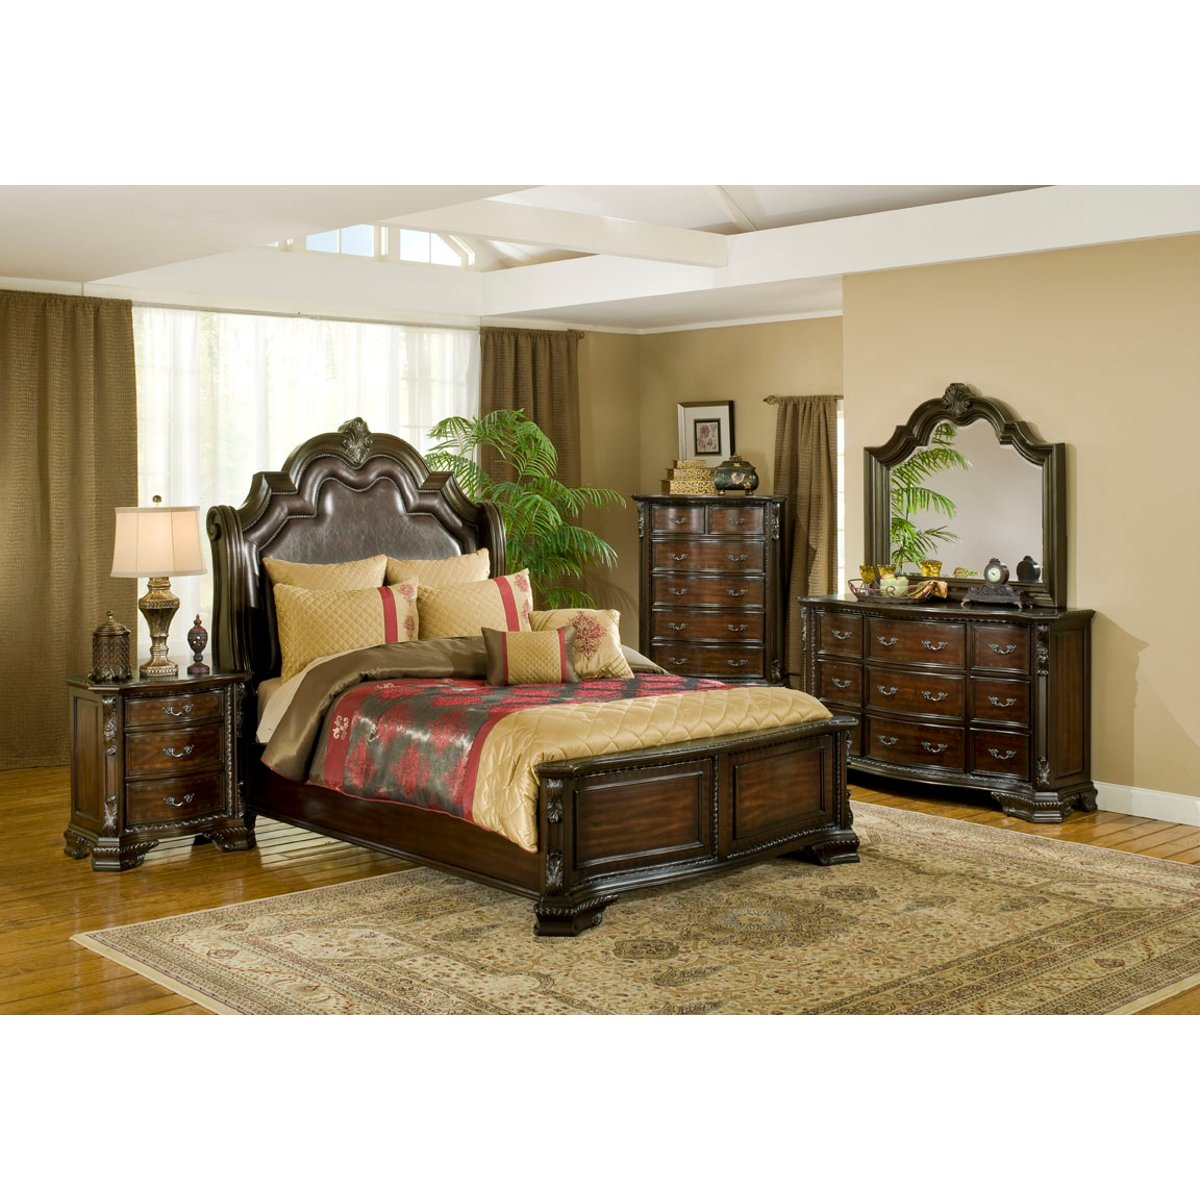 bedroom furniture sets : beds, bedframes, dressers & more | conn's